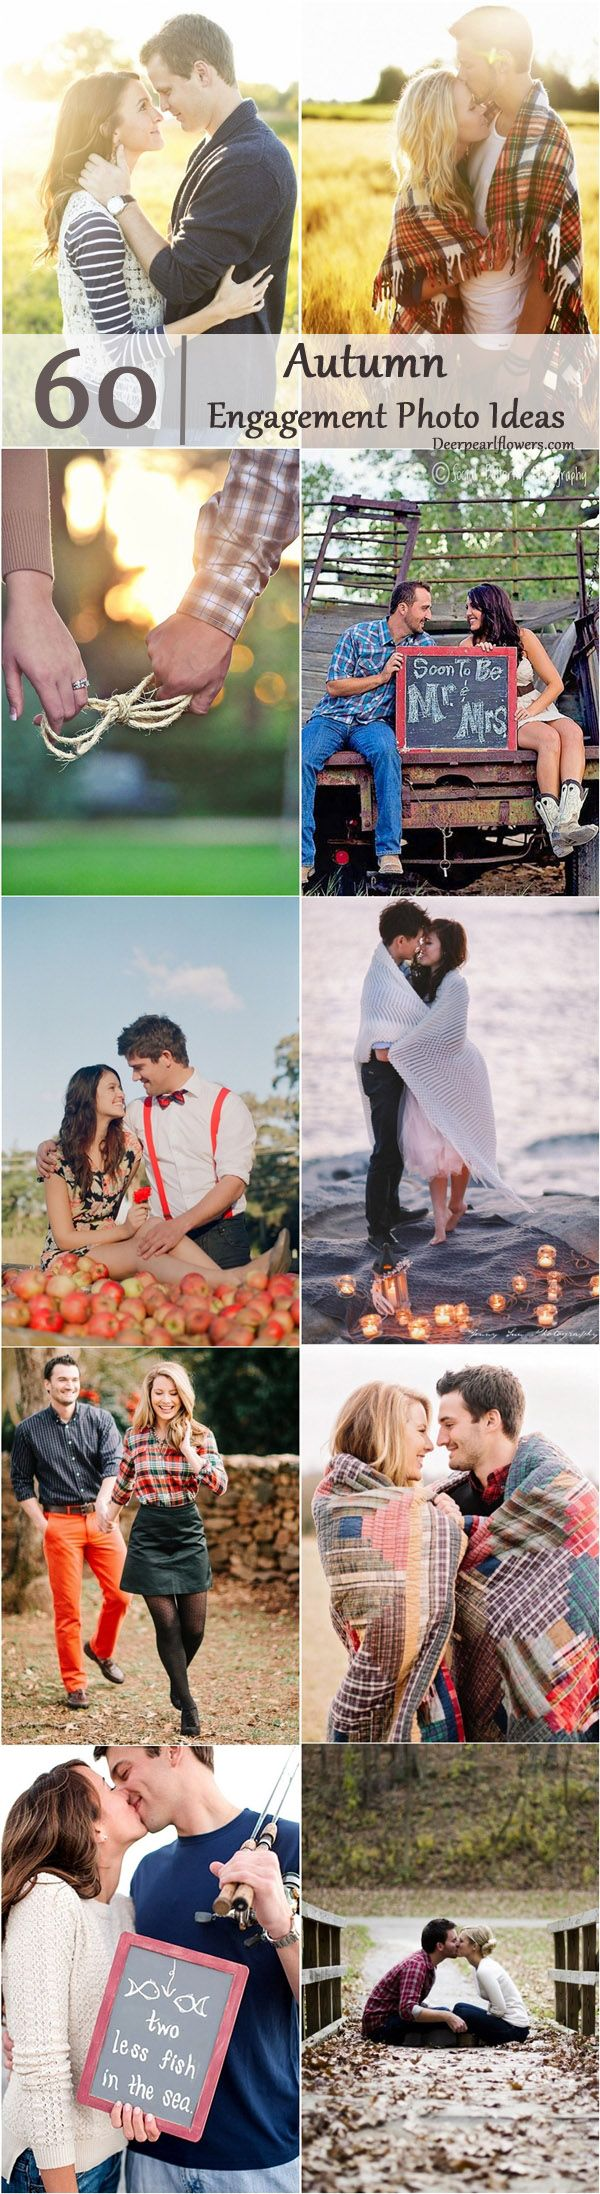 Autumn wedding ideas- fall engagement photo ideas / http://www.deerpearlflowers.com/fall-engagement-photo-ideas/2/